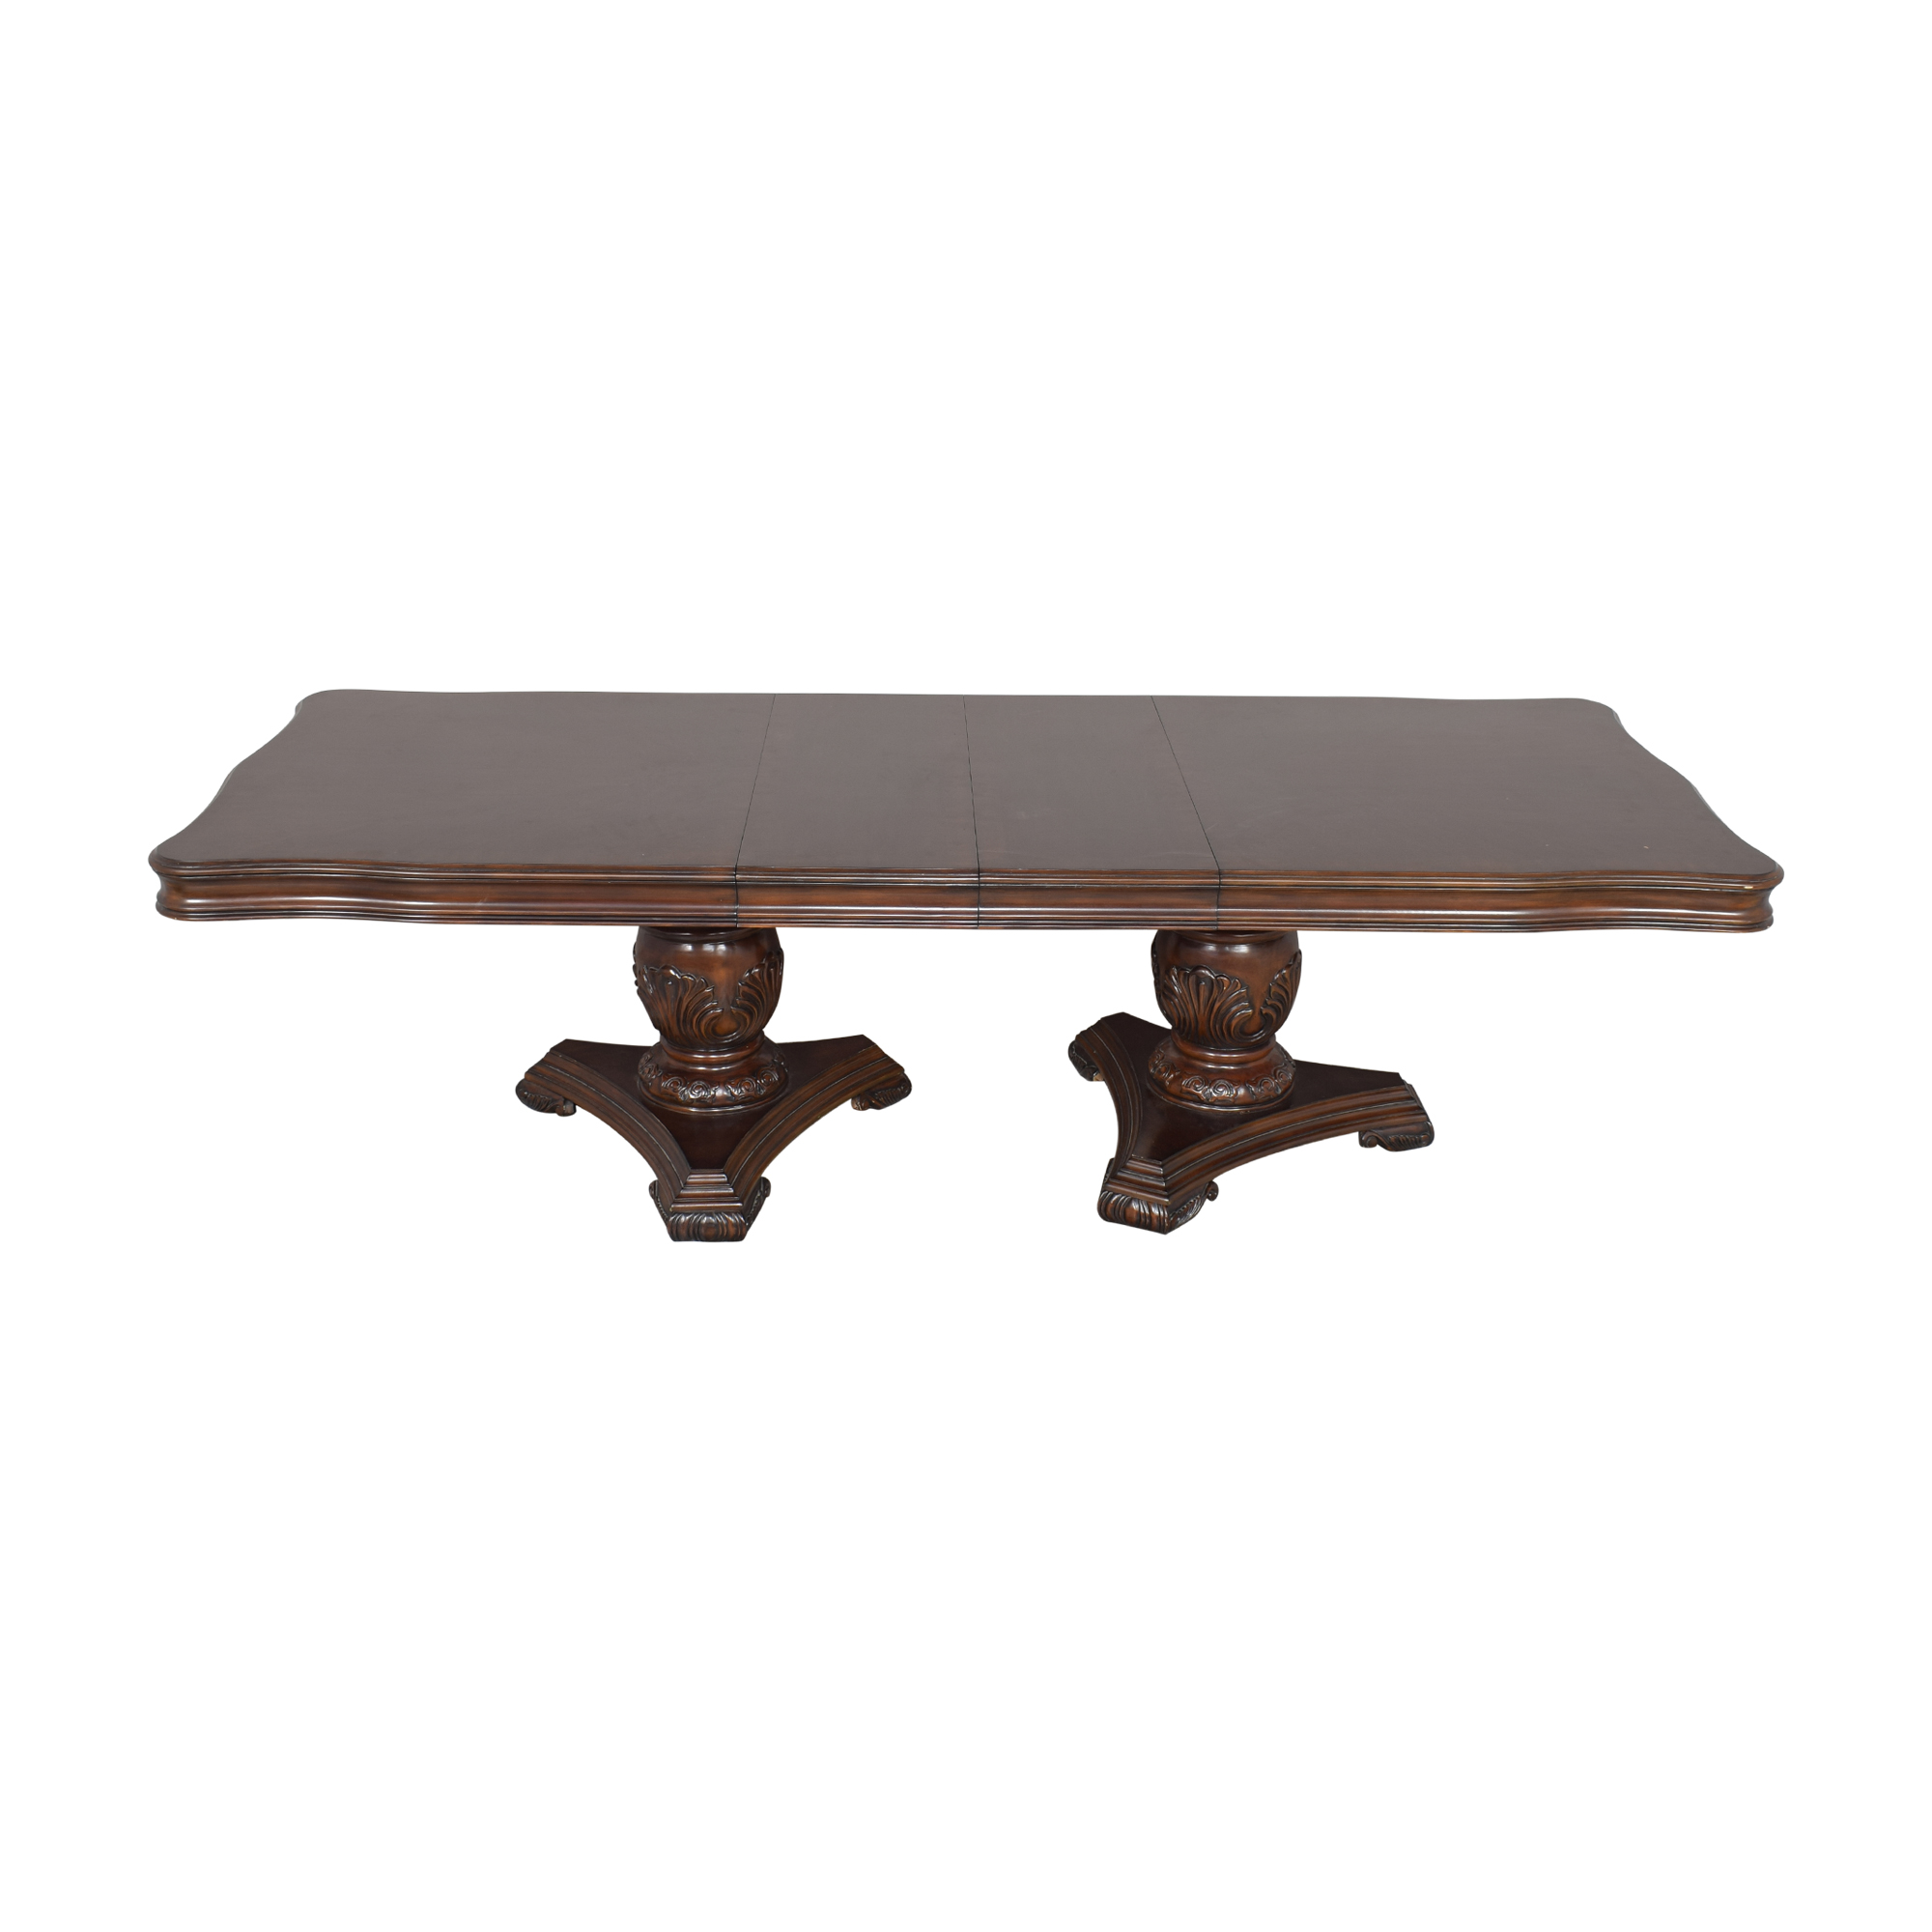 Raymour & Flanigan Raymour & Flanigan Double Pedestal Dining Table used